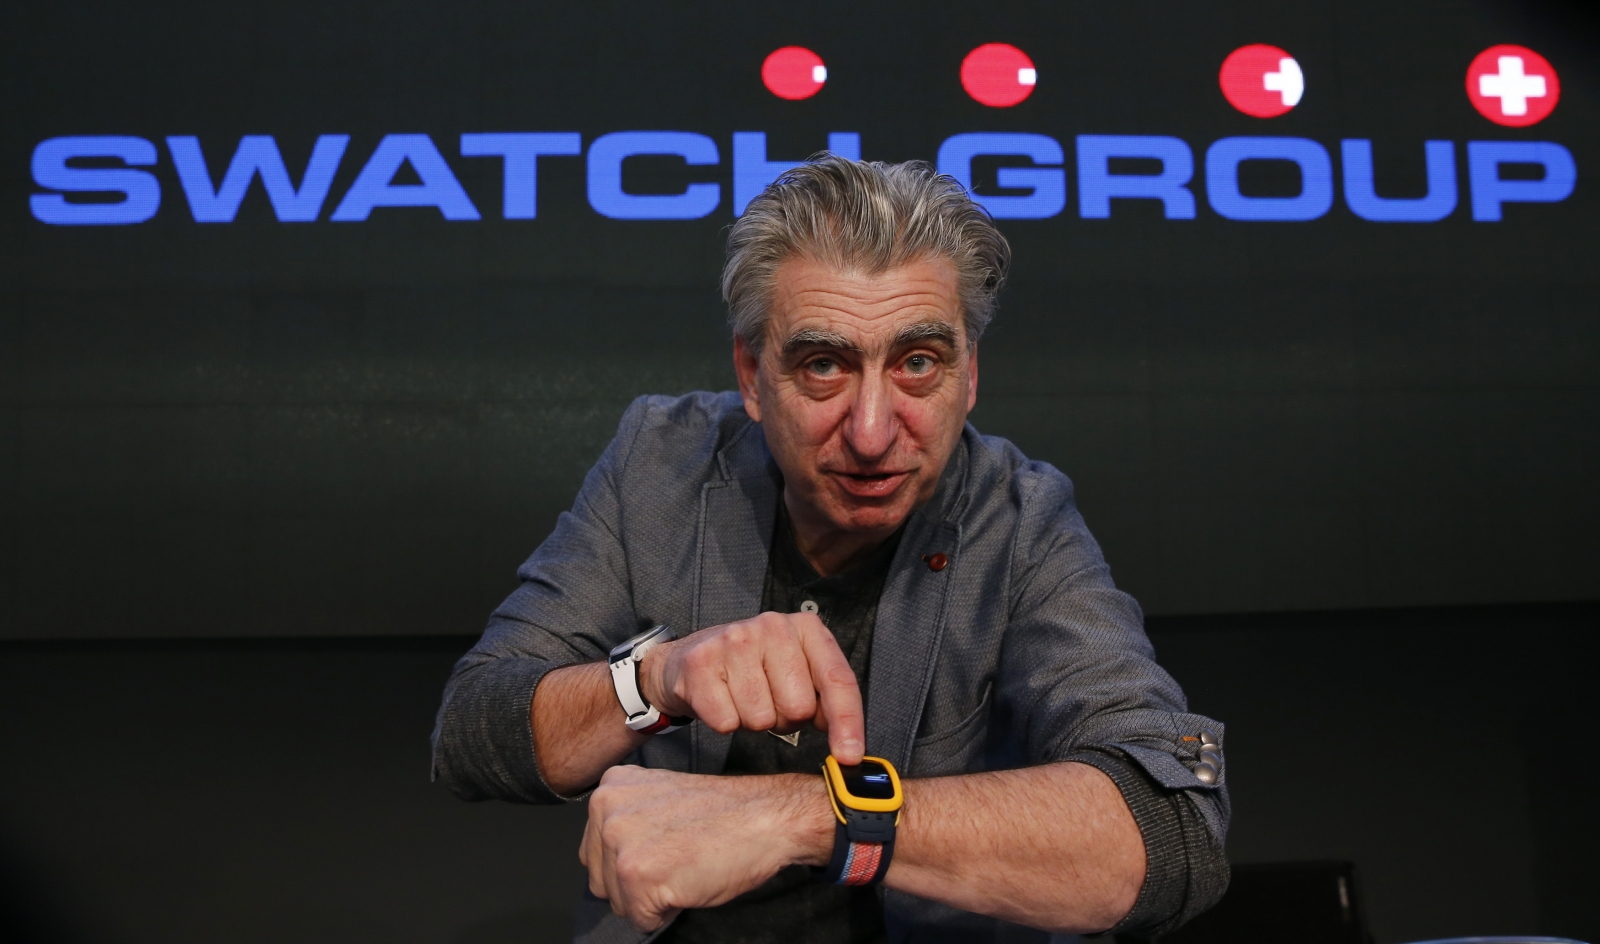 Swatch CEO Nick Hayek